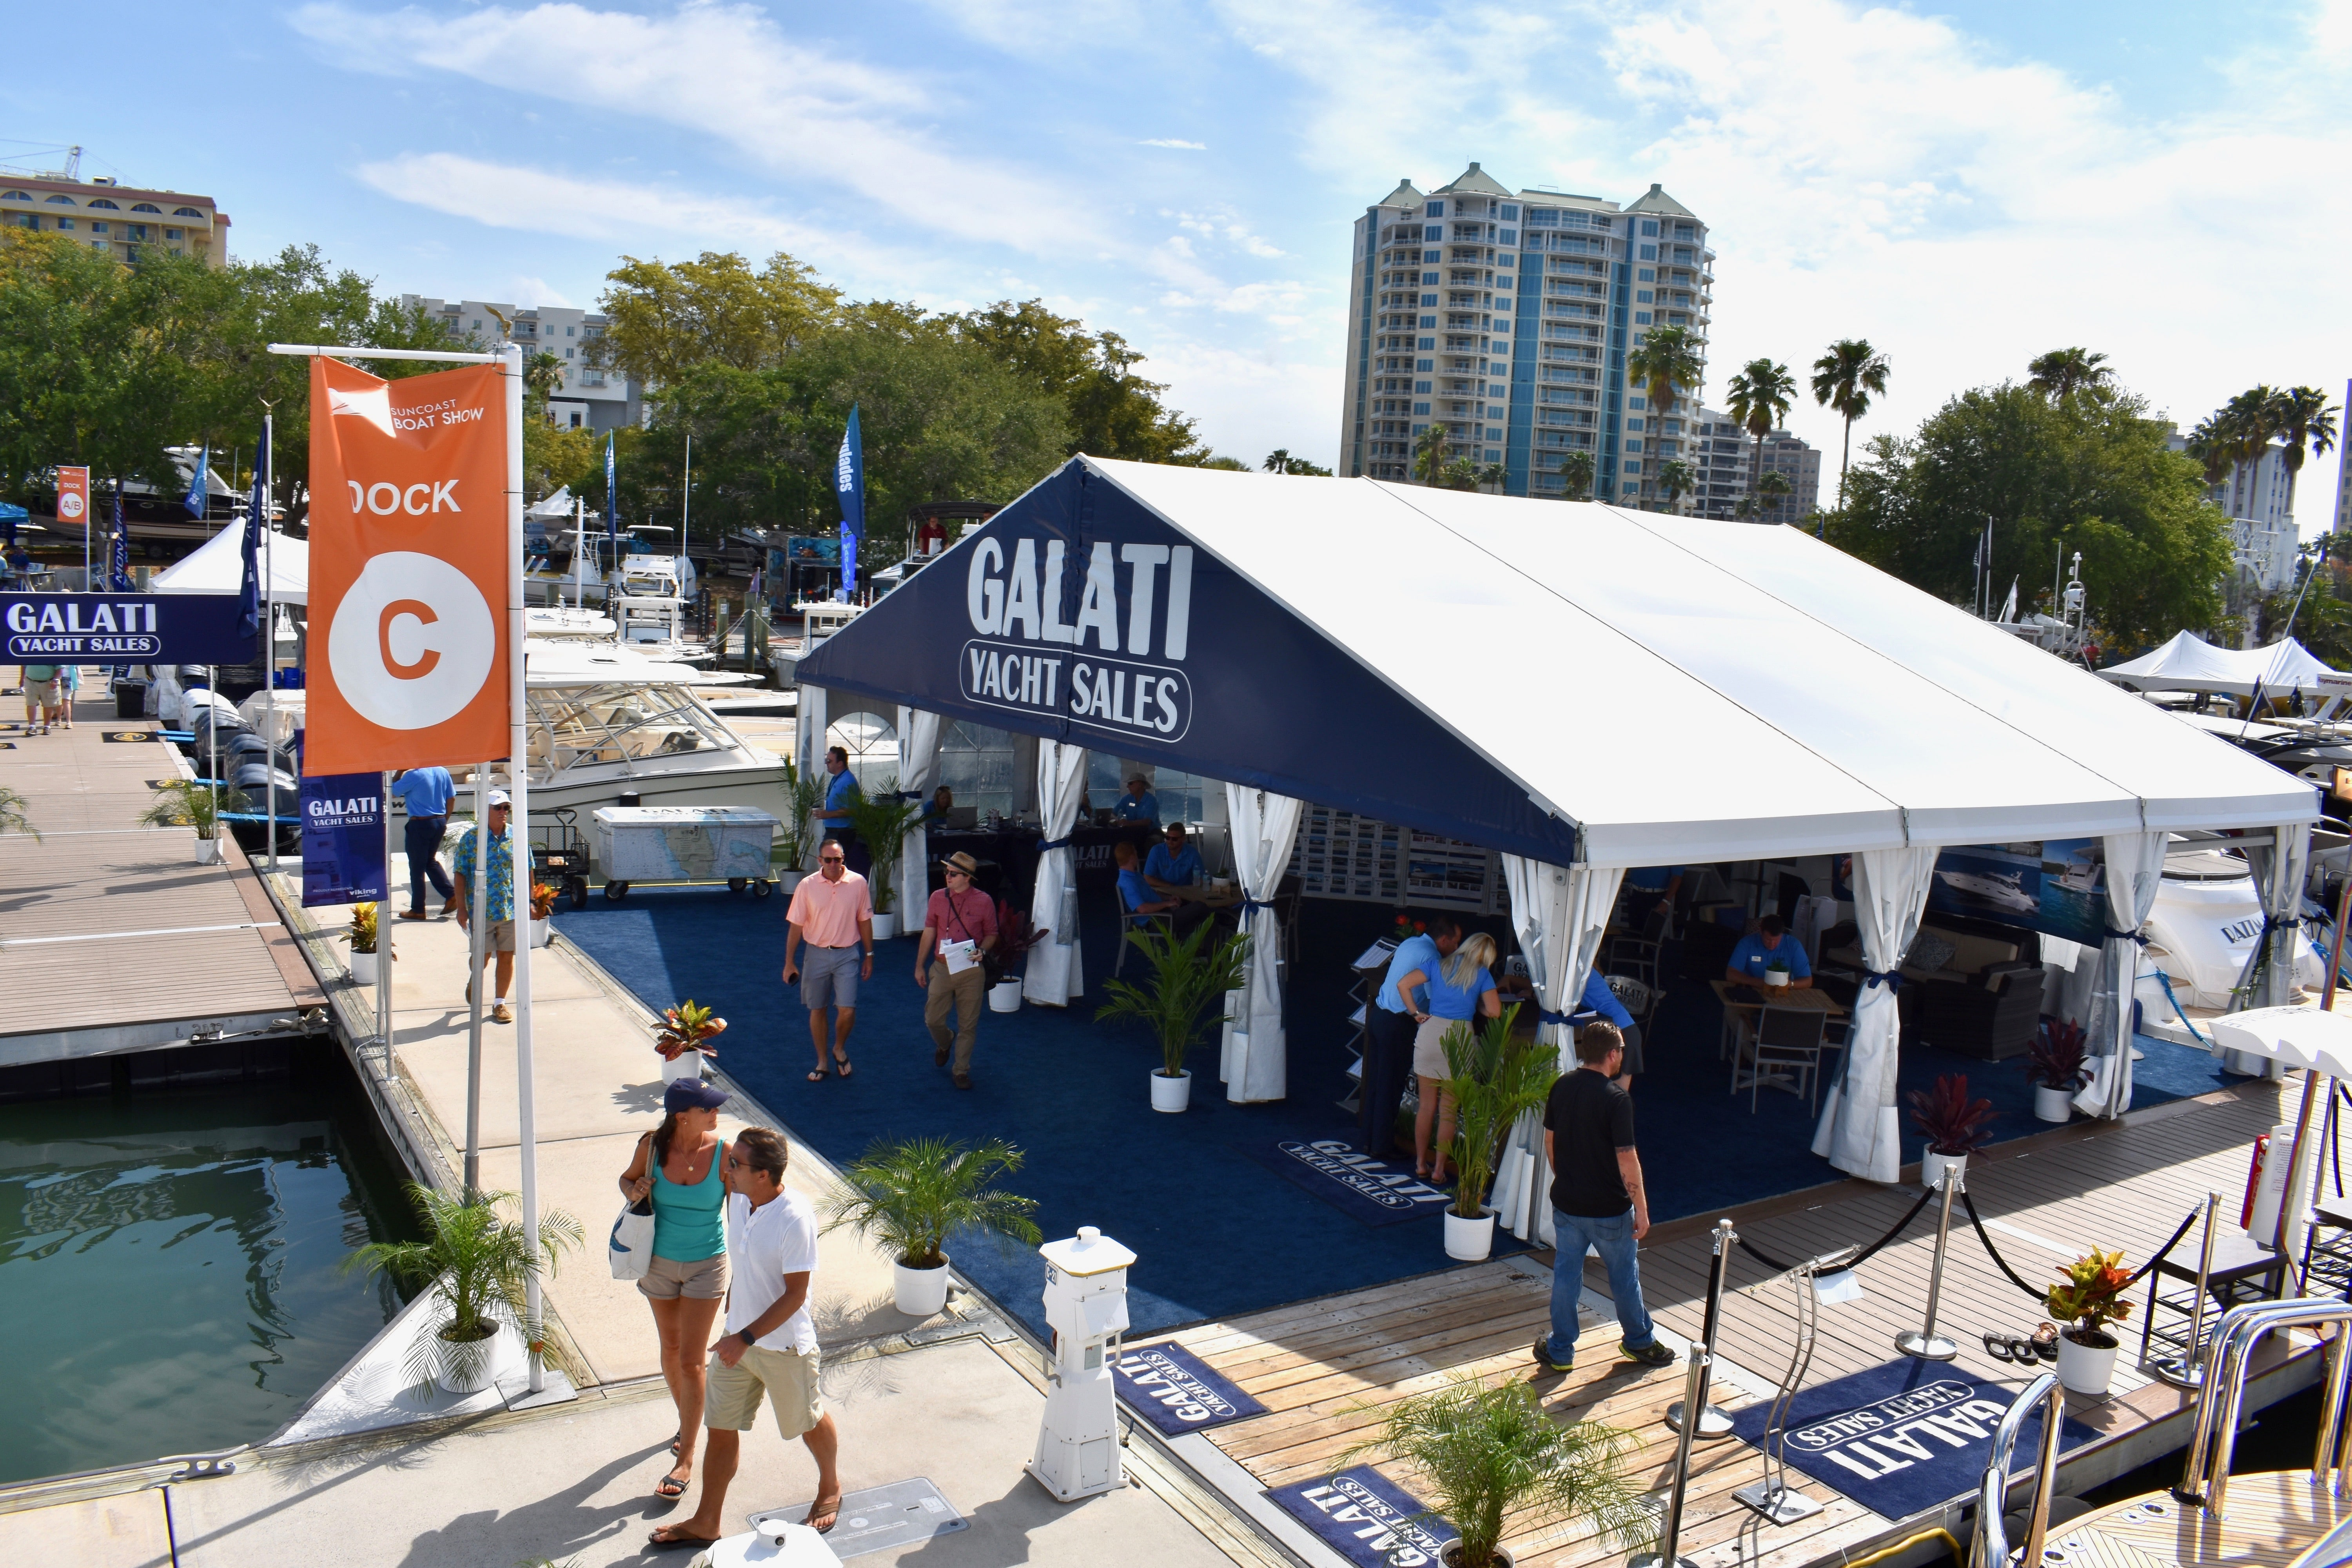 Galati Yacht Sales tent at the Suncoast Boat Show